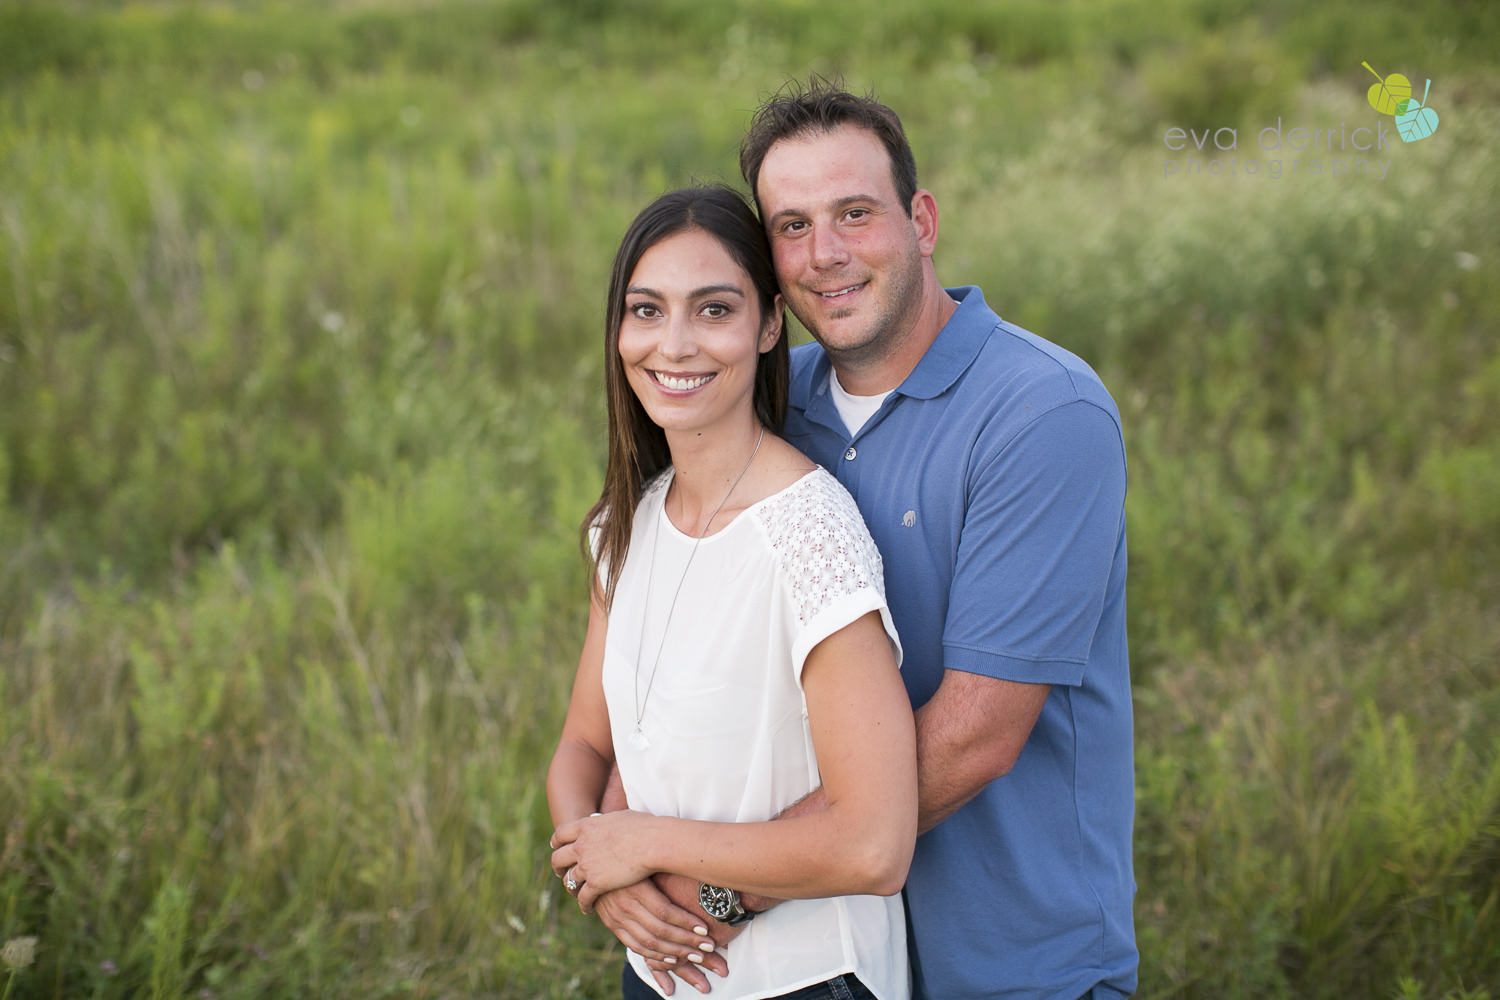 Niagara-Engagement-Session-photography-by-Eva-Derrick-Photography-016.JPG